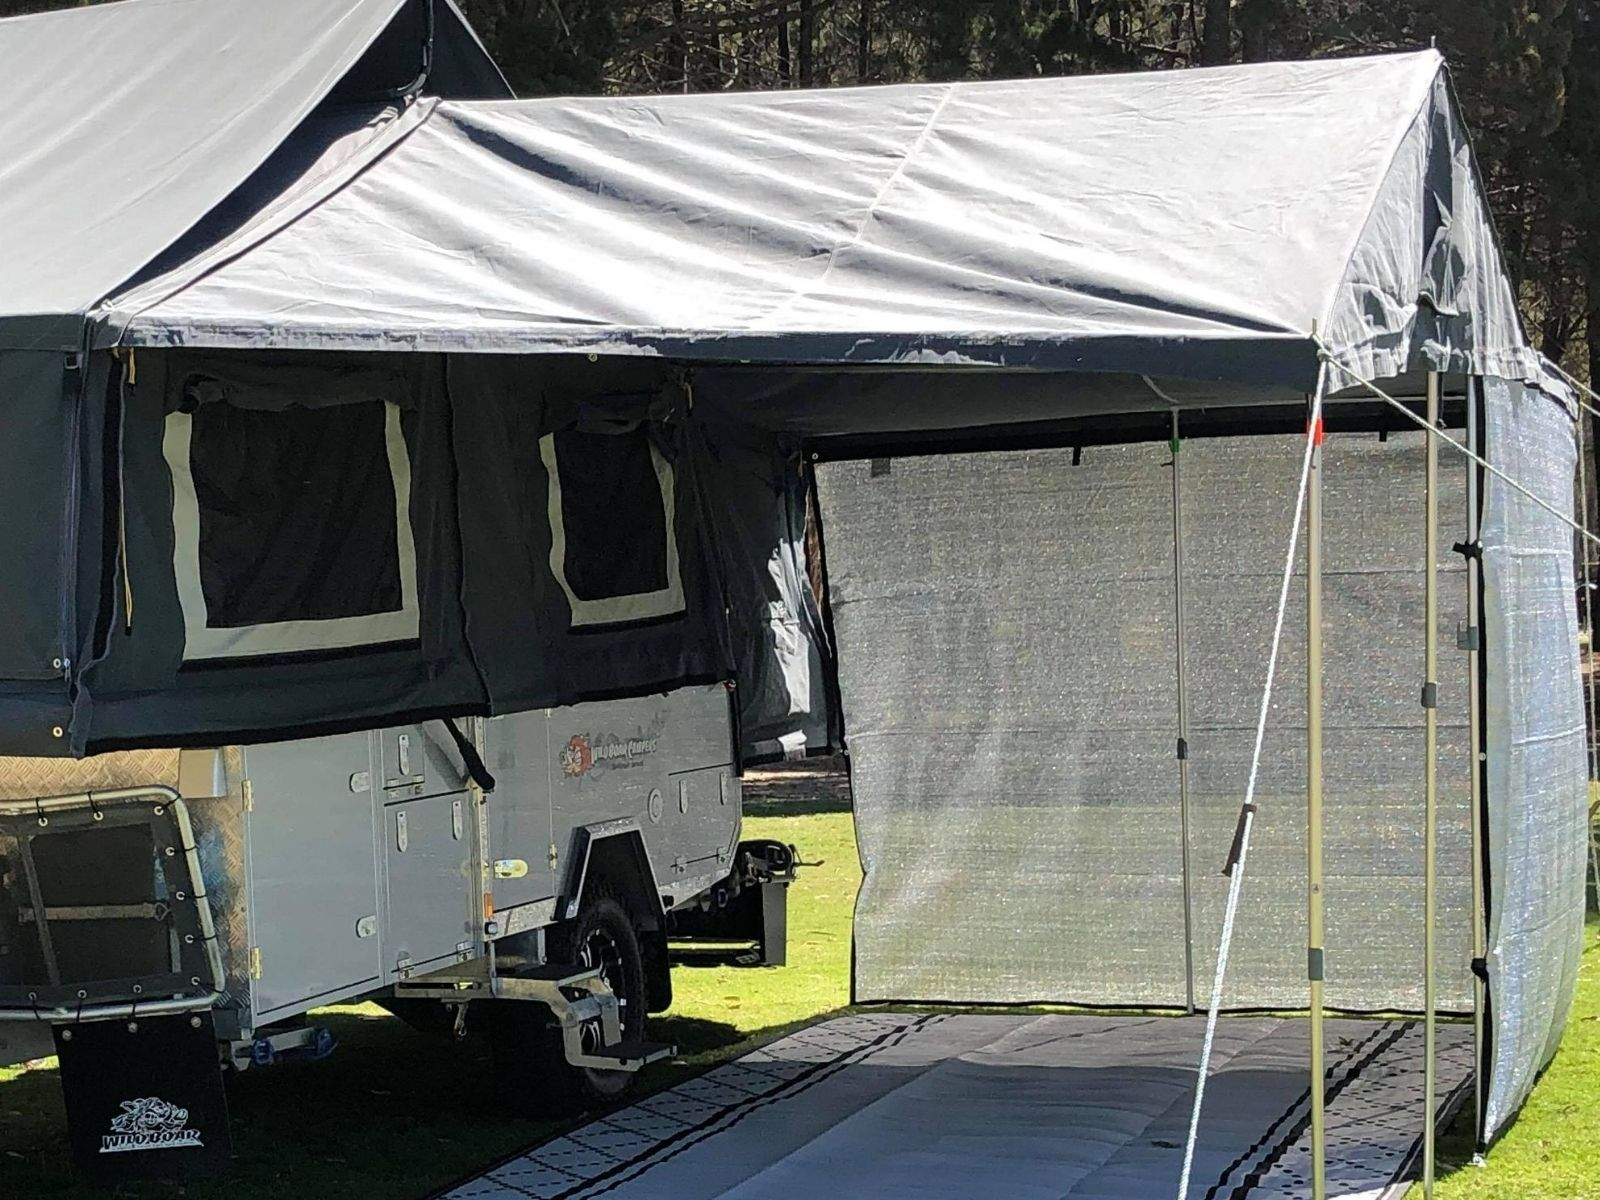 6m Camper Trailer shade screen wraps around the awning creating a screen room